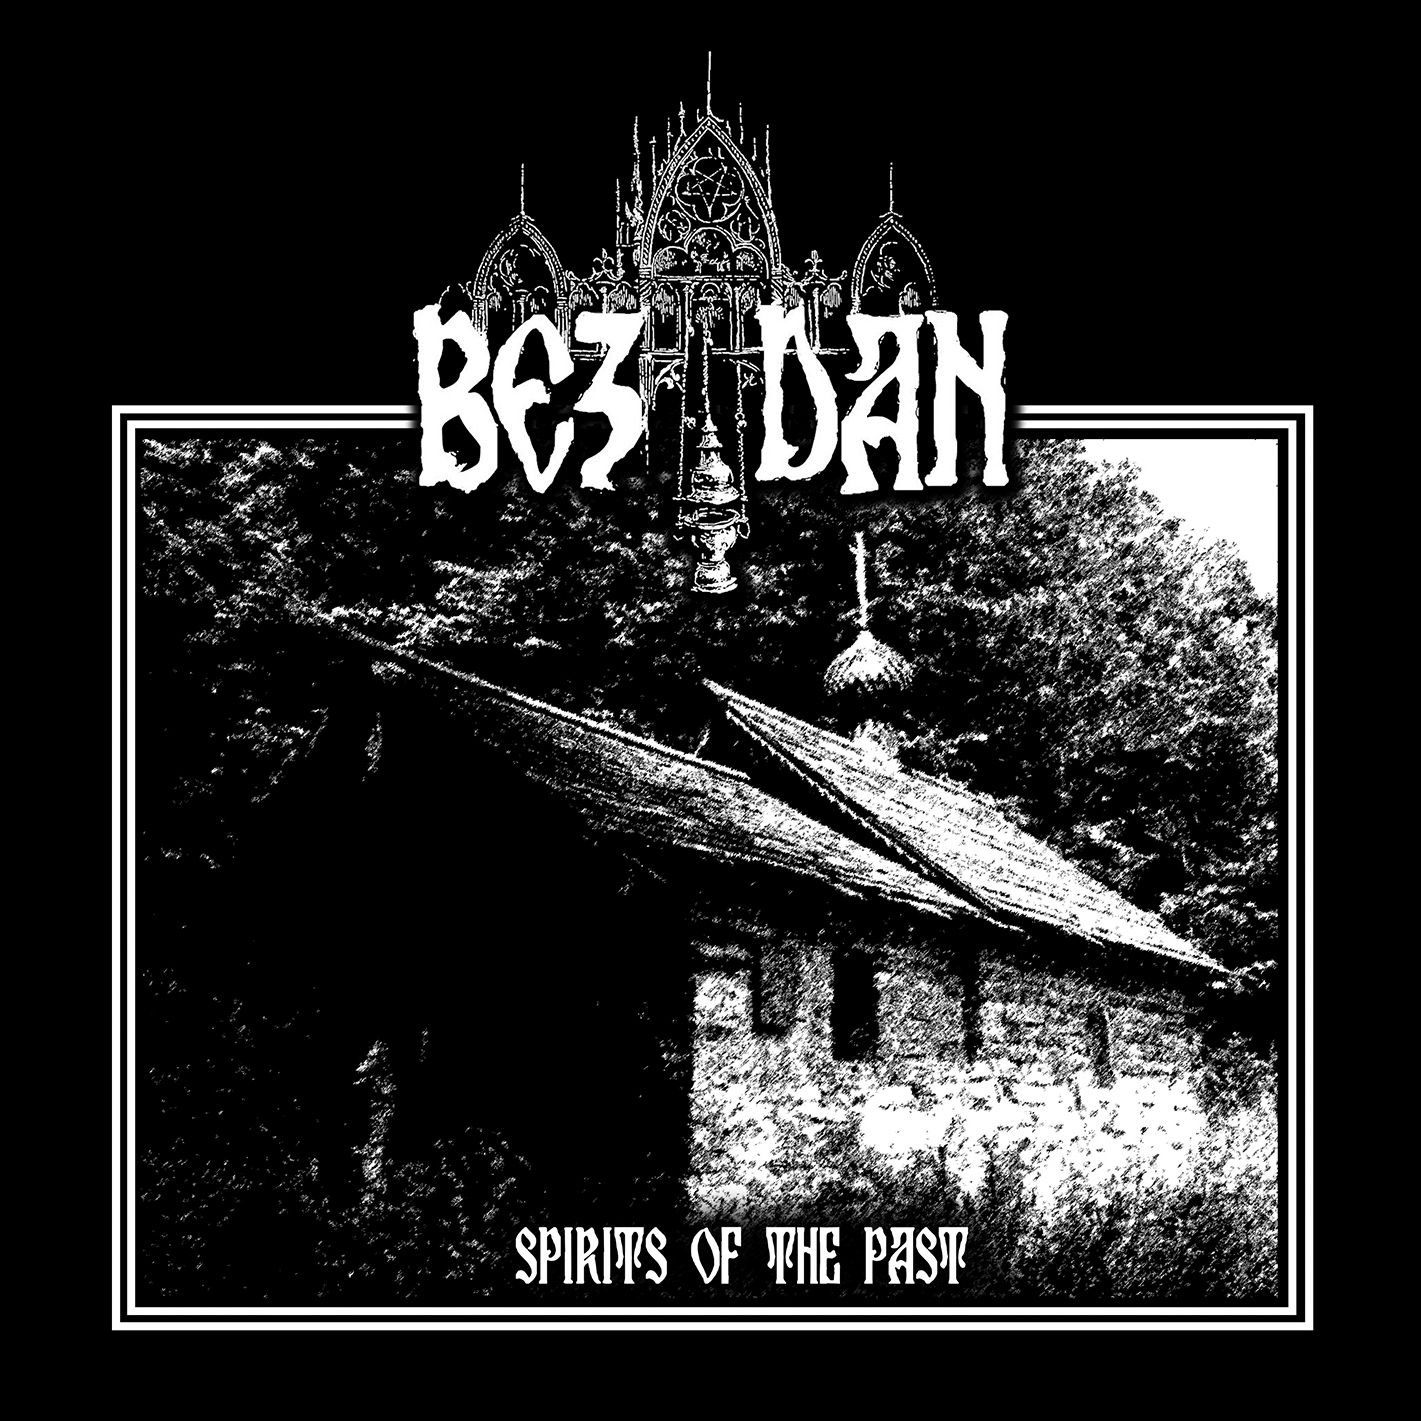 BEZDAN - Spirits of the Past